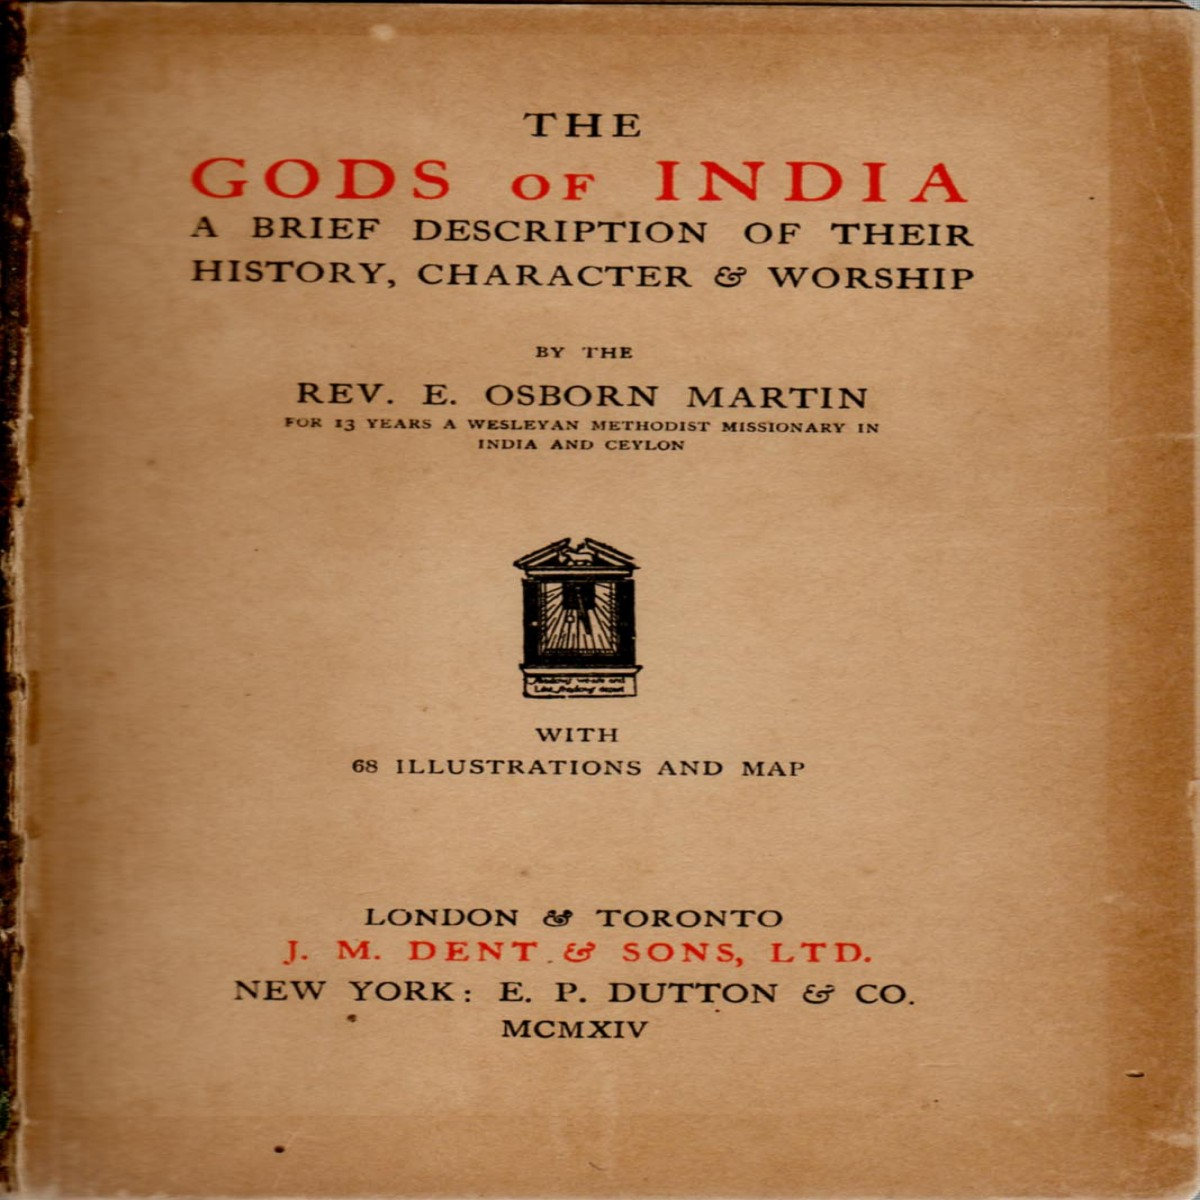 The Gods Of India: A Brief Description Of Their History, Character & Worship (Back cover page missing)